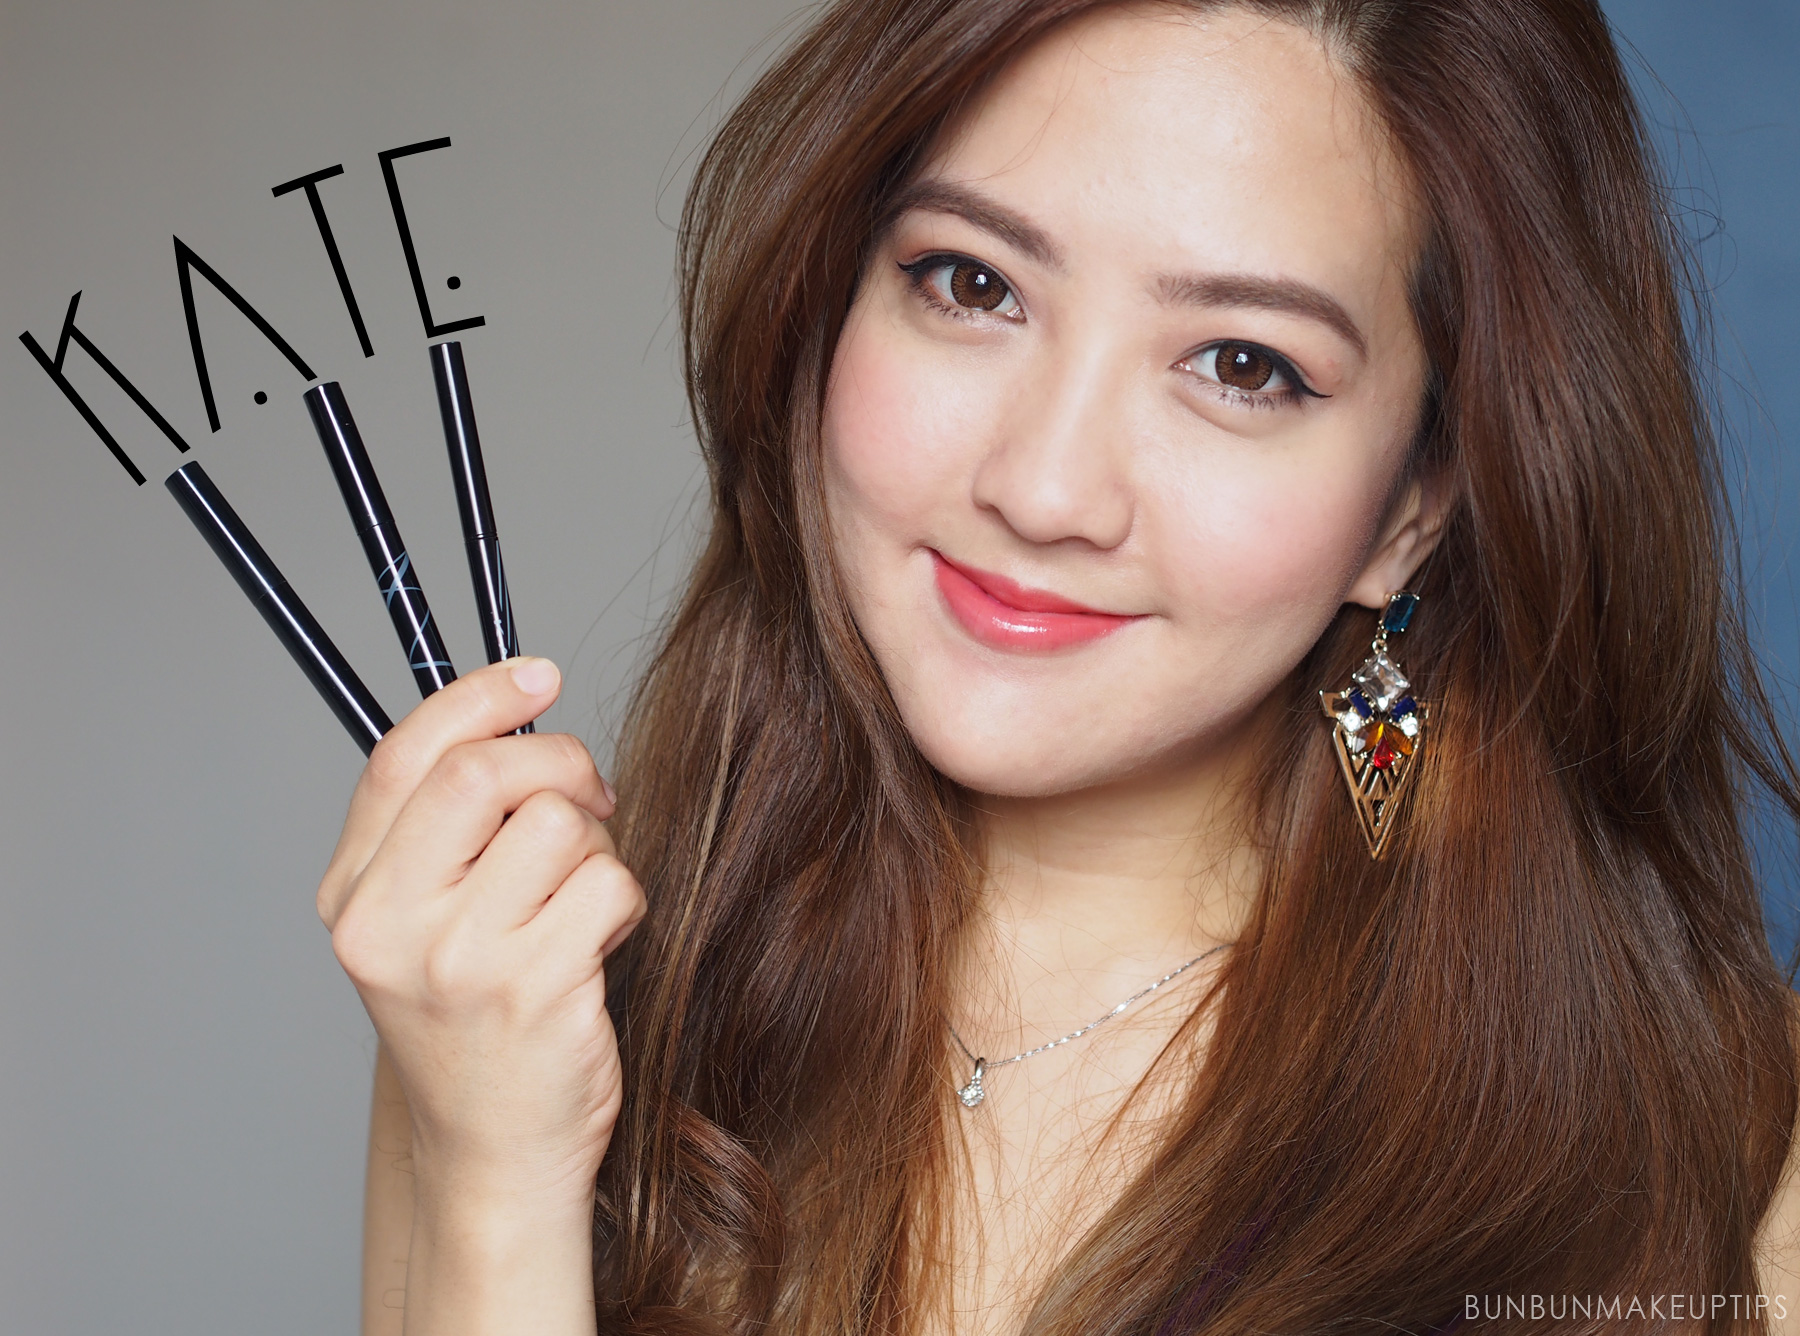 Kate-Super-Sharp-Liner,-Quick-Eyeliner,-Slim-Gel-Pencil-Review_cover